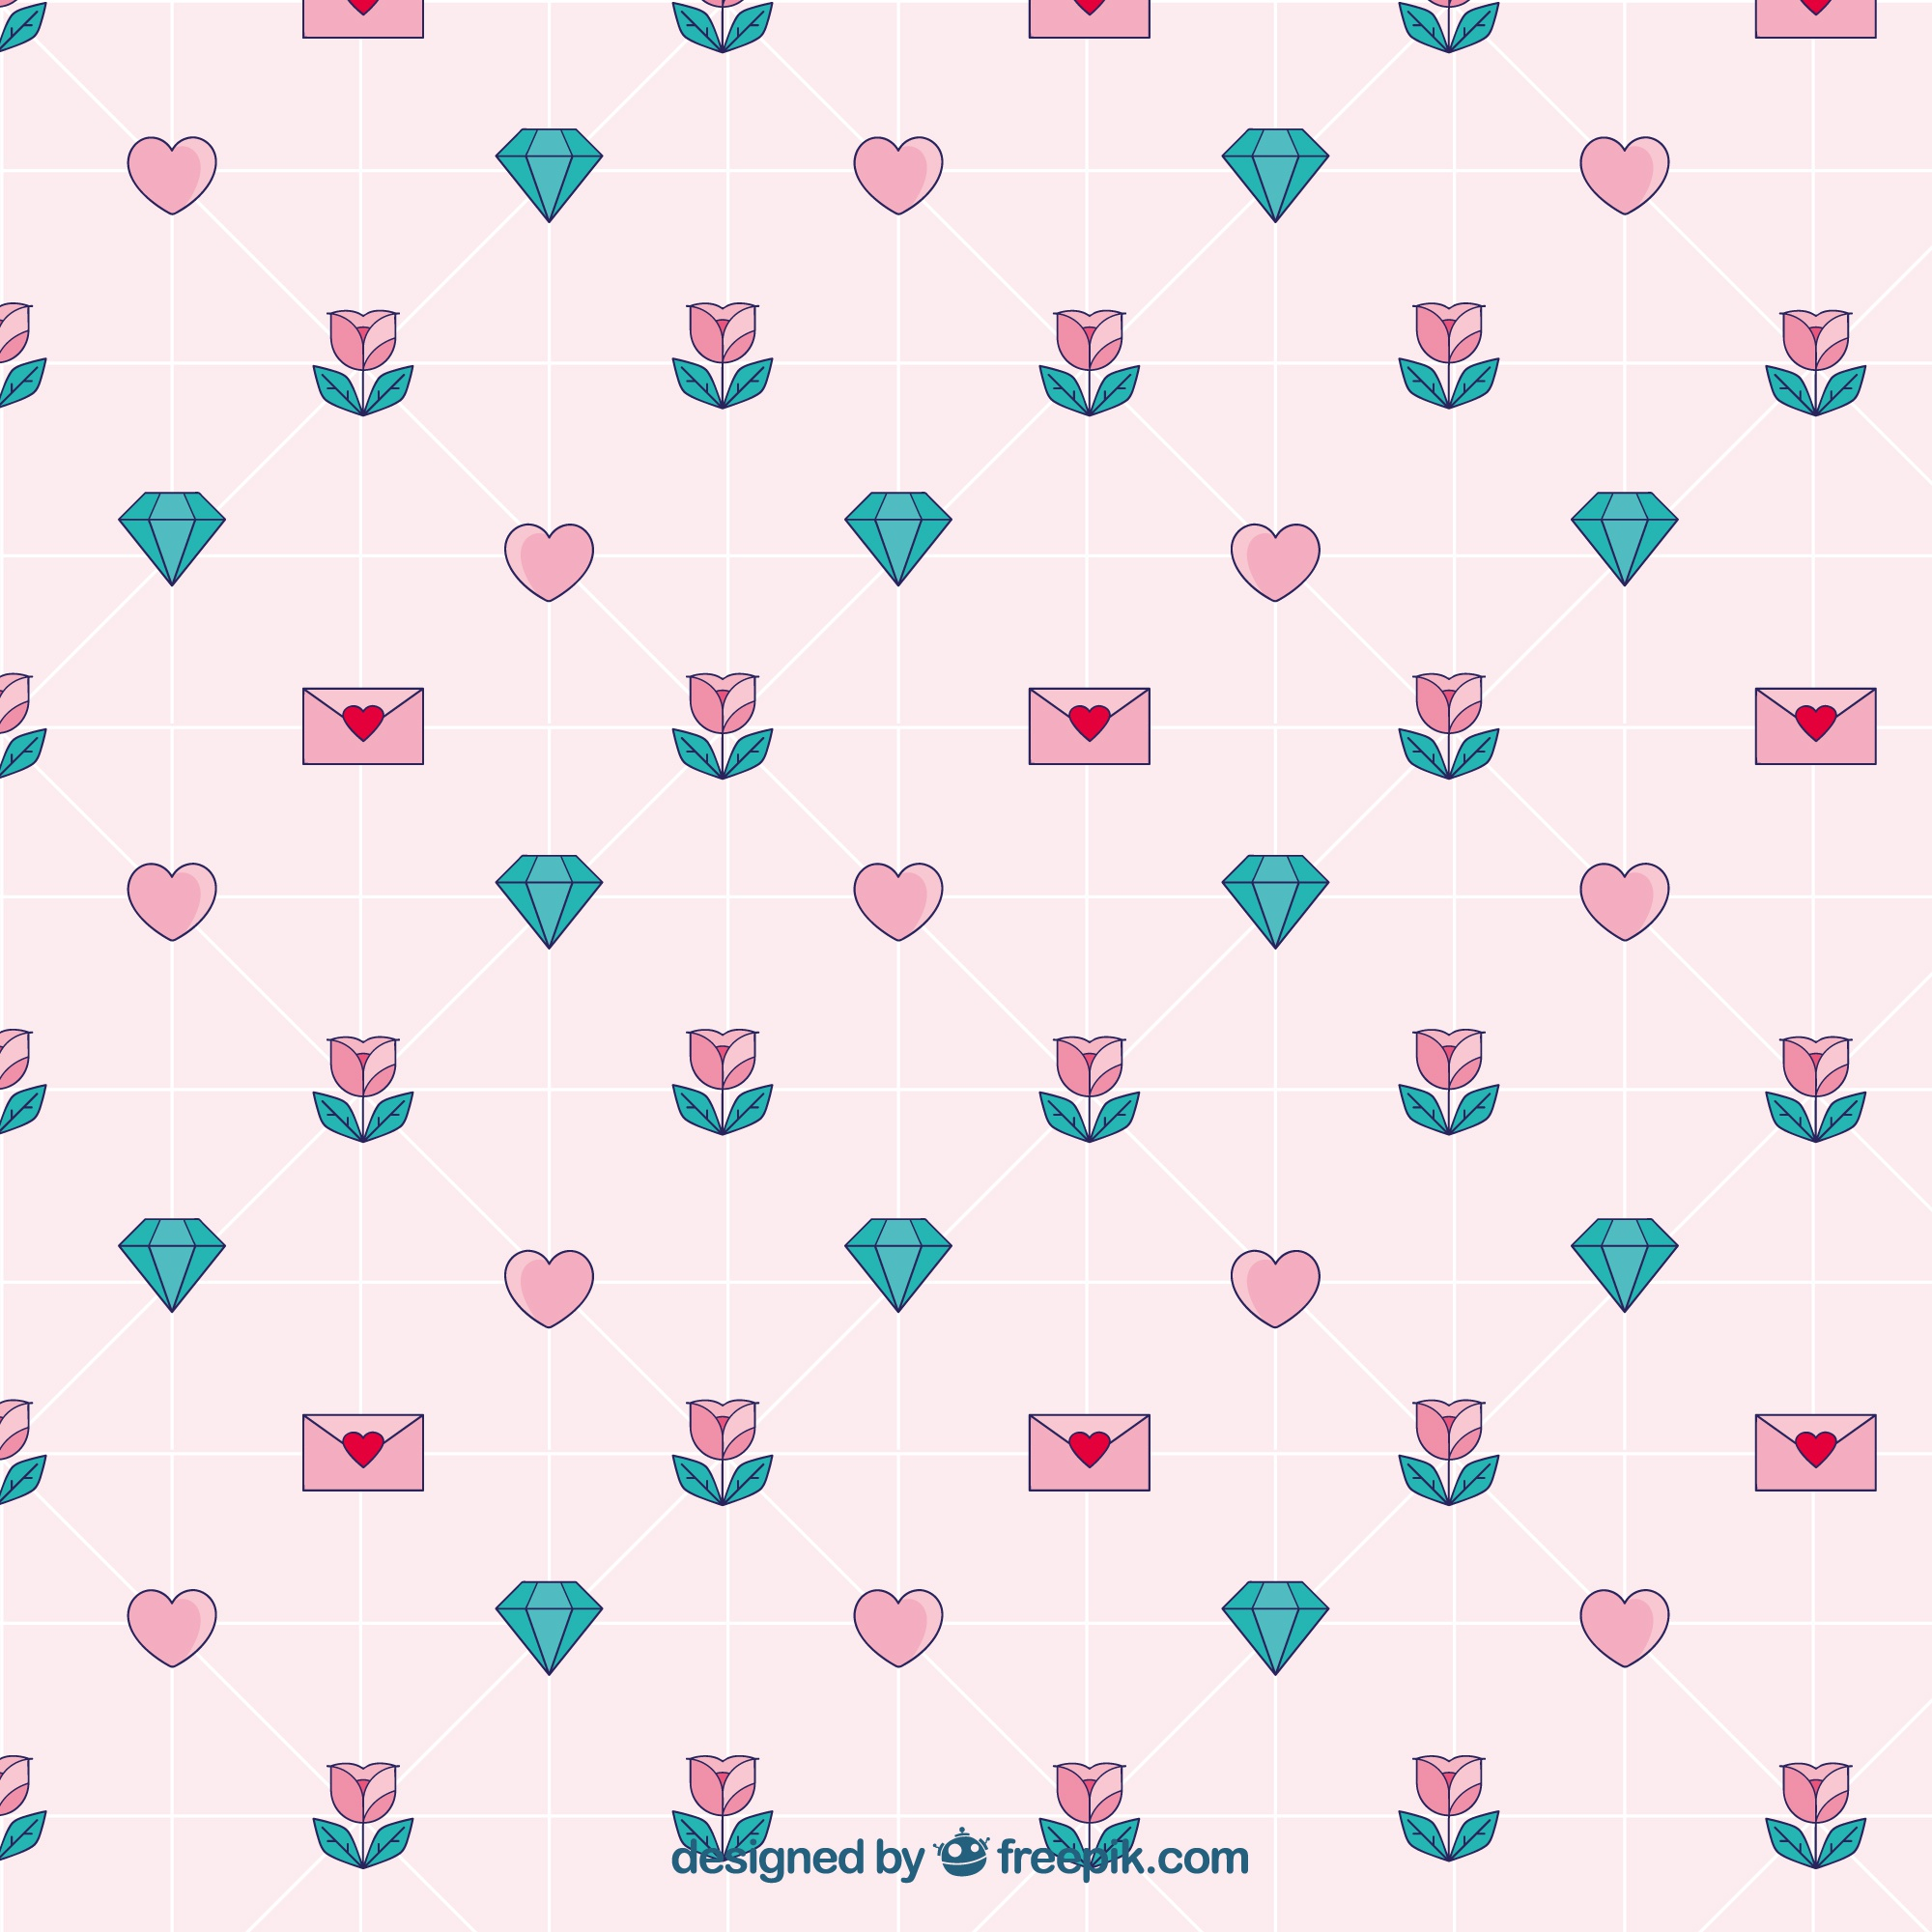 Geometric pattern with beautiful elements ready for valentine's day